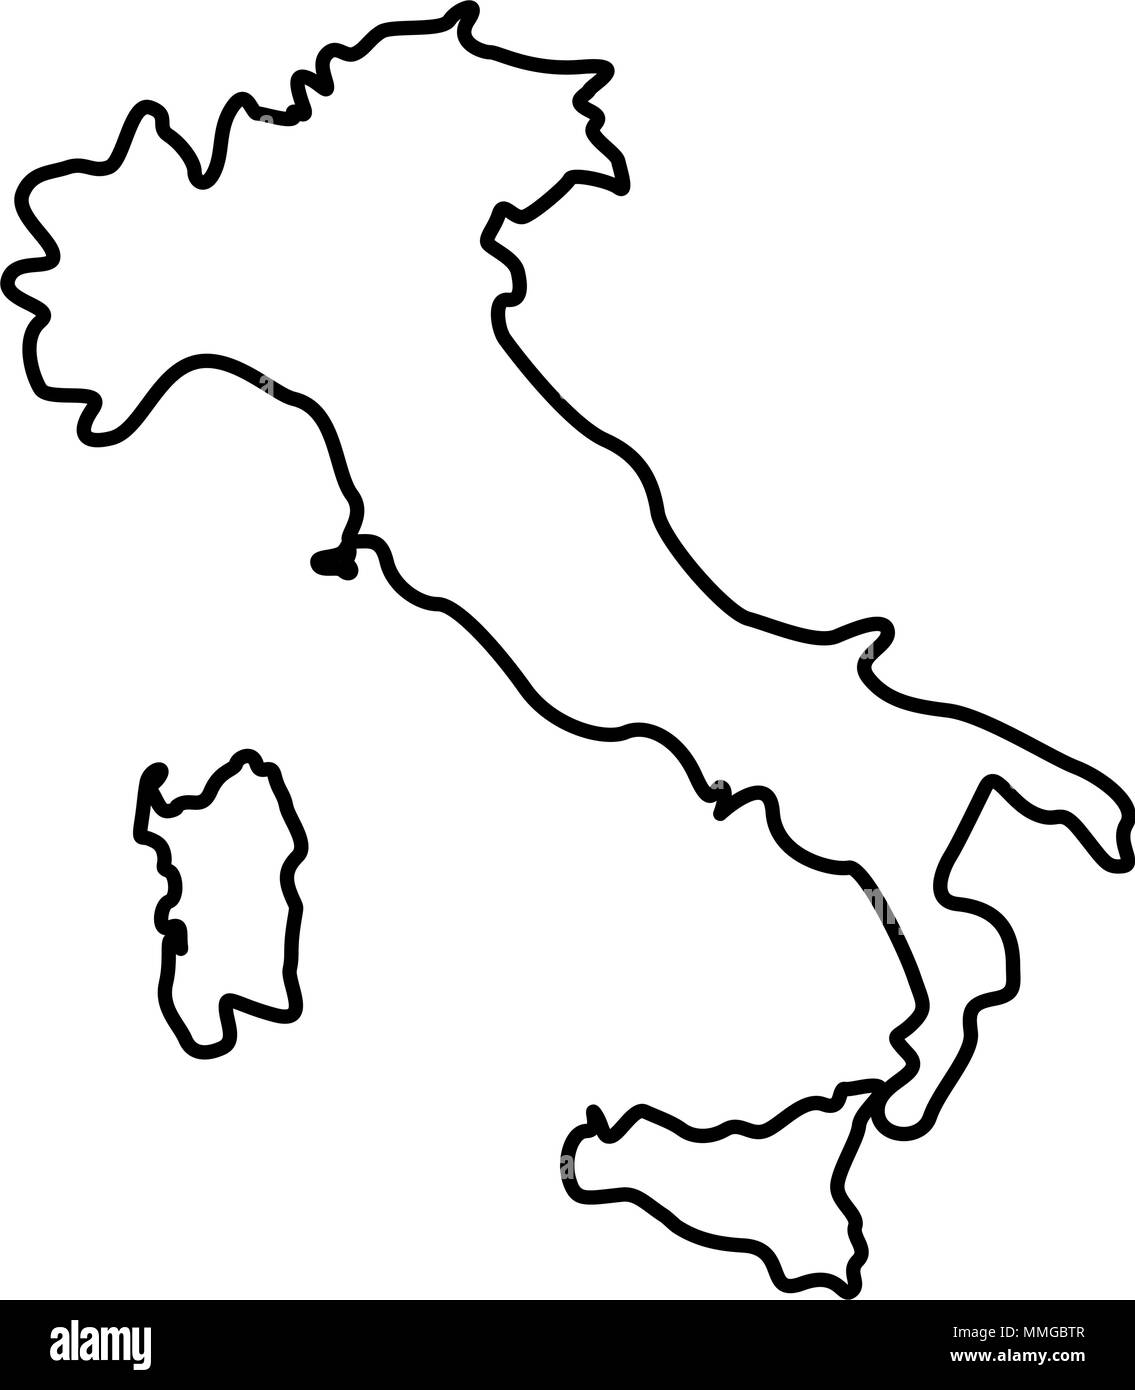 Icon Map Of Italy Picture on haiti map icon, singapore map icon, brazil map icon, finland map icon, spain map icon, bangladesh map icon, jordan map icon, french guiana map icon, botswana map icon, russia map icon, nigeria map icon, morocco map icon, greece map icon, european union map icon, asia map icon, thailand map icon, trinidad and tobago map icon, food map icon, pizza map icon, nordic map icon,